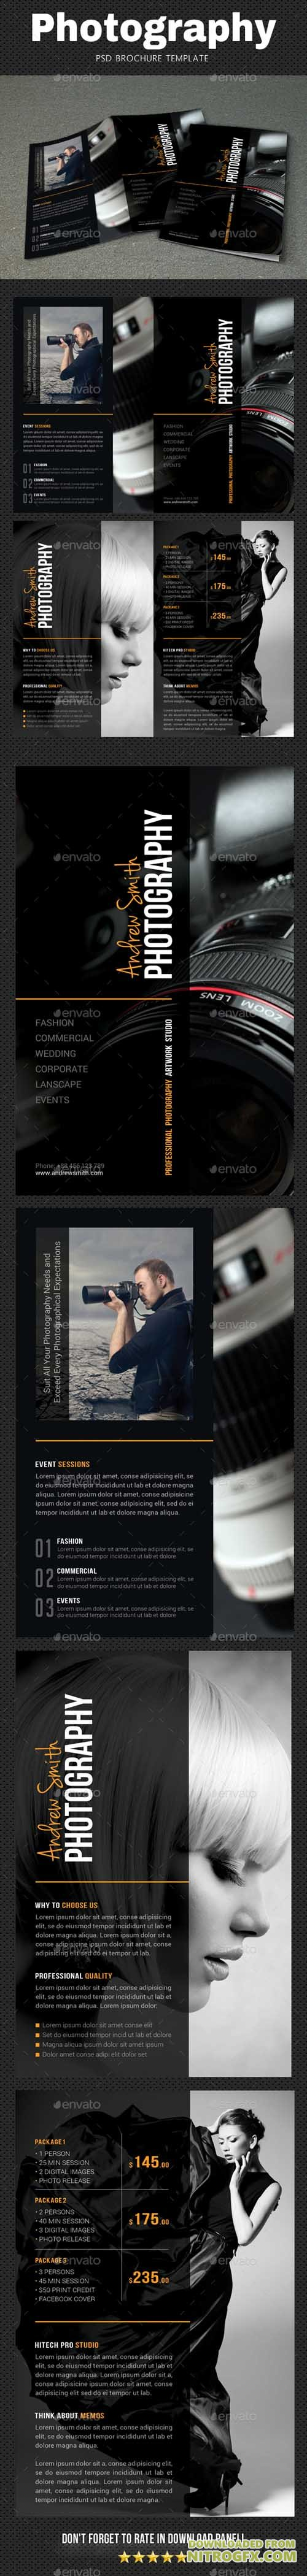 GraphicRiver - Photography Brochure 2 20670432